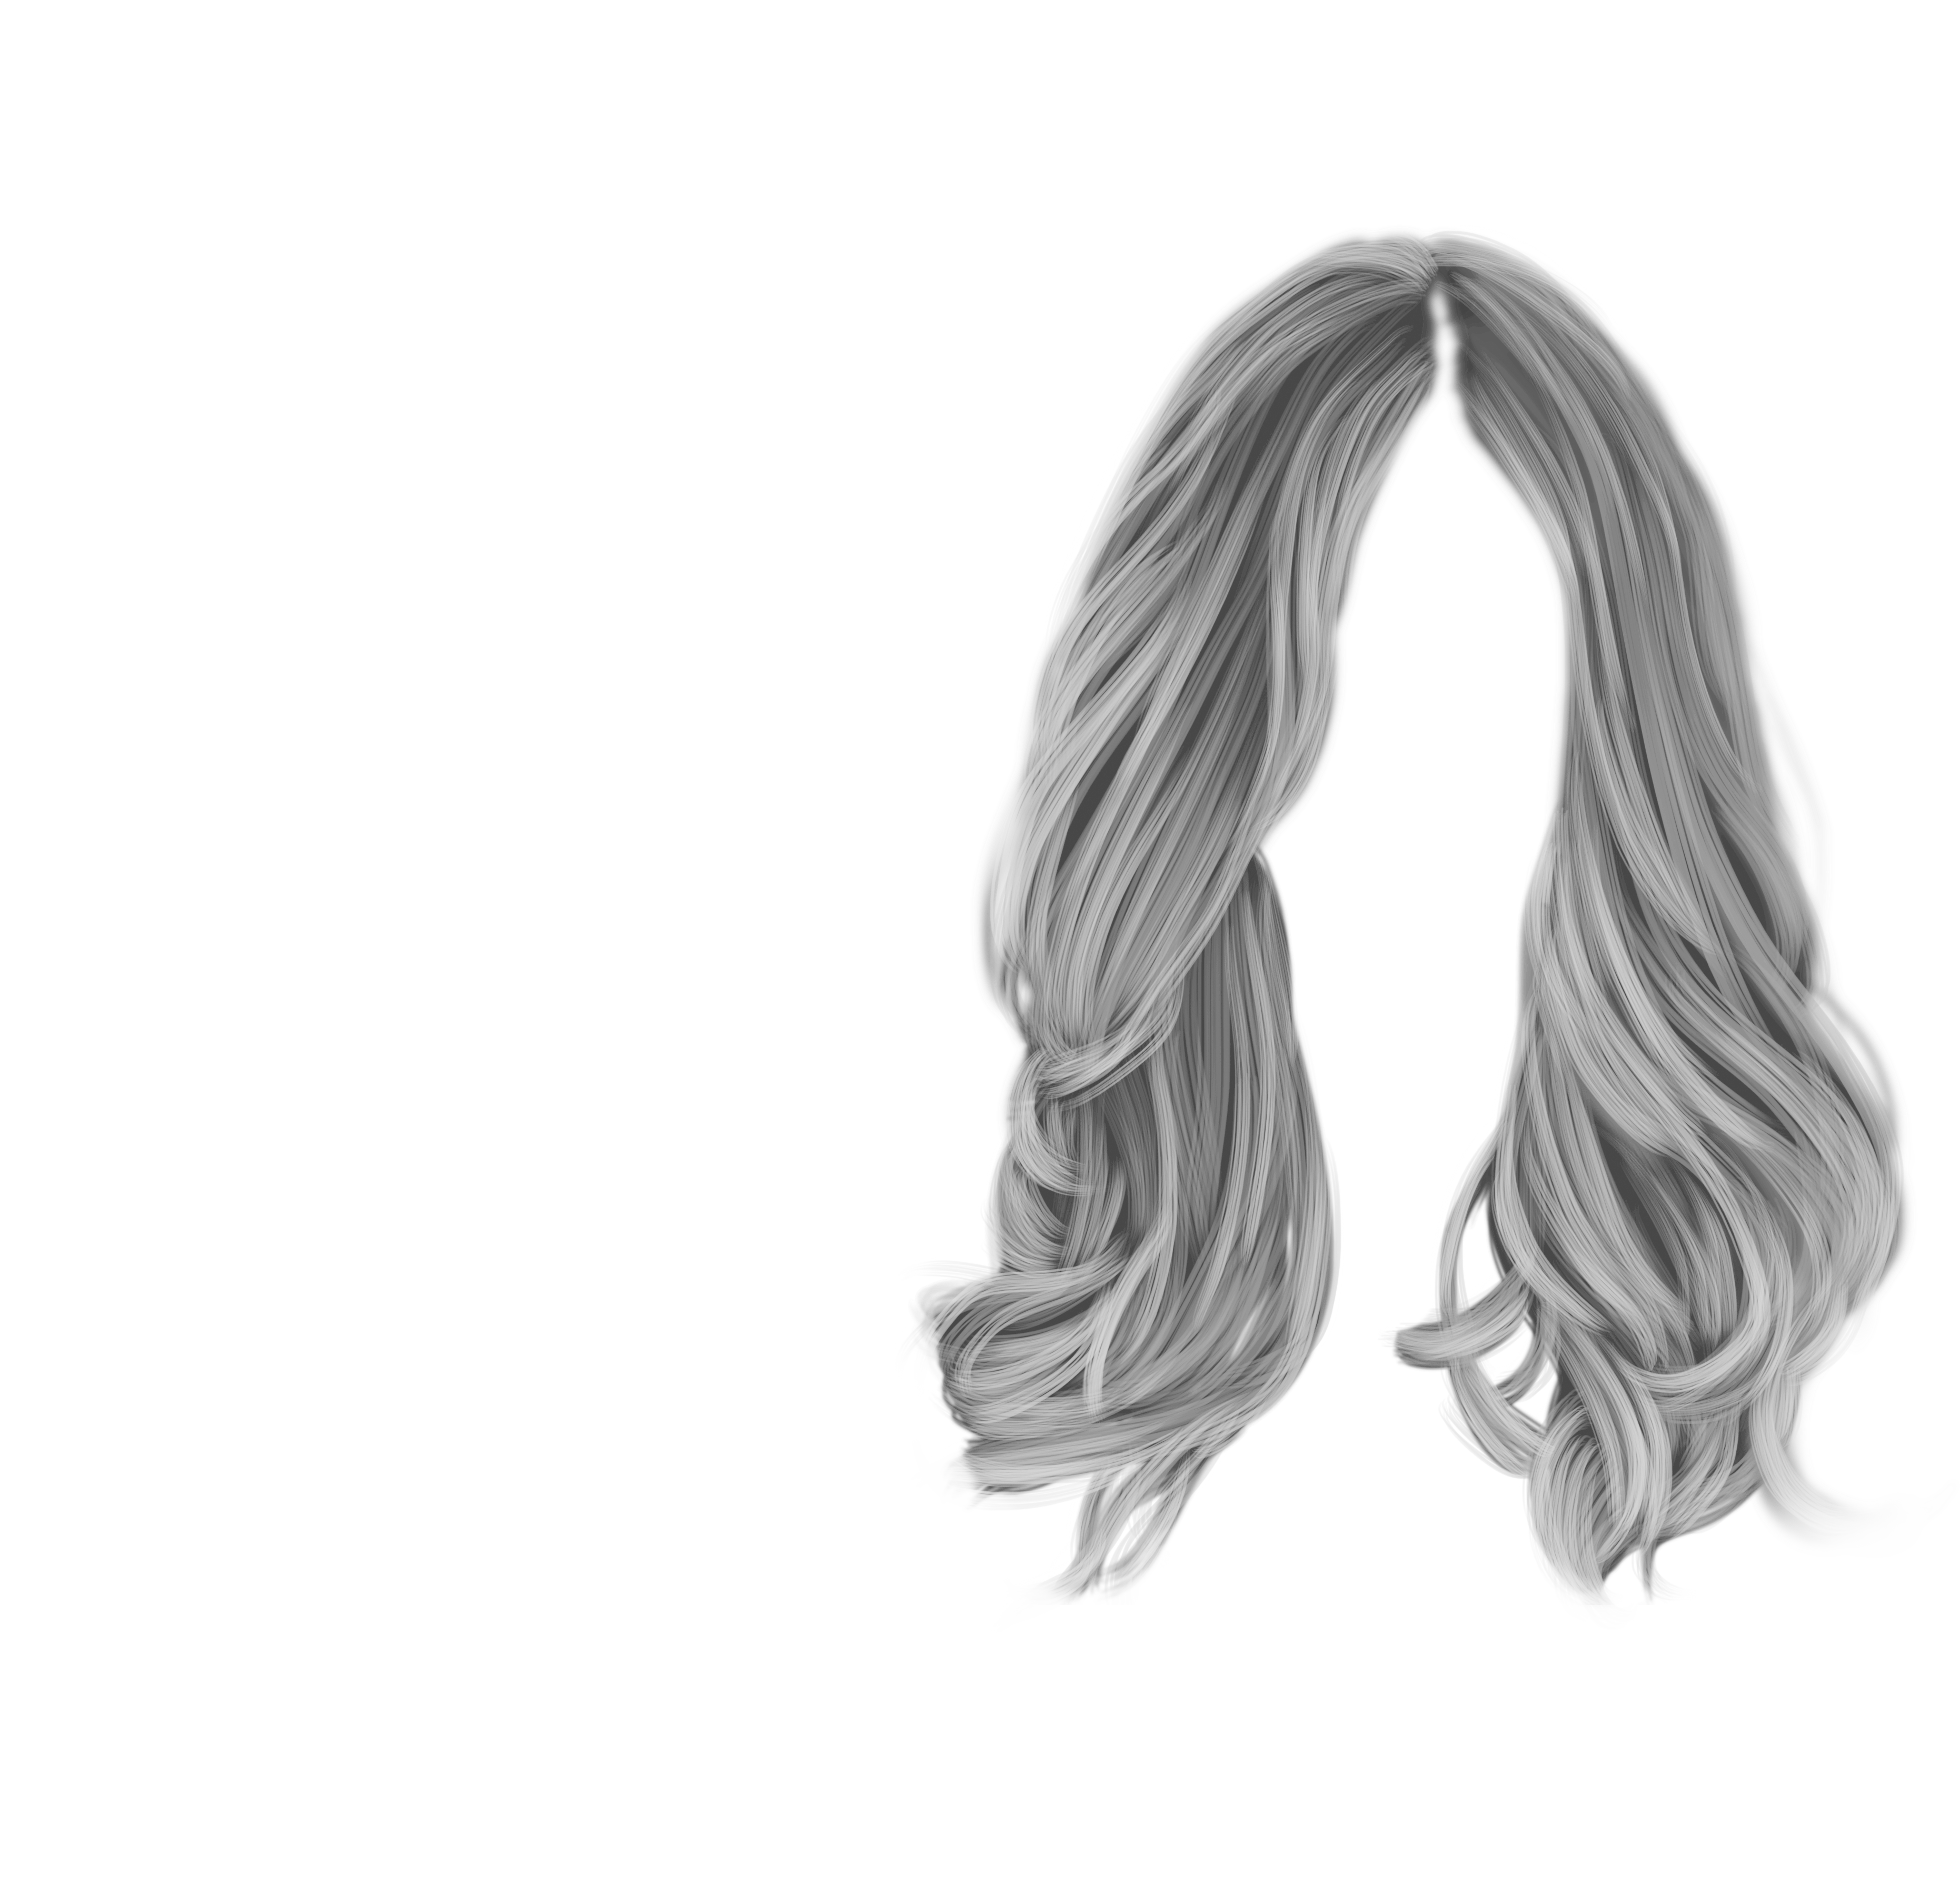 White hair png. Images in collection page